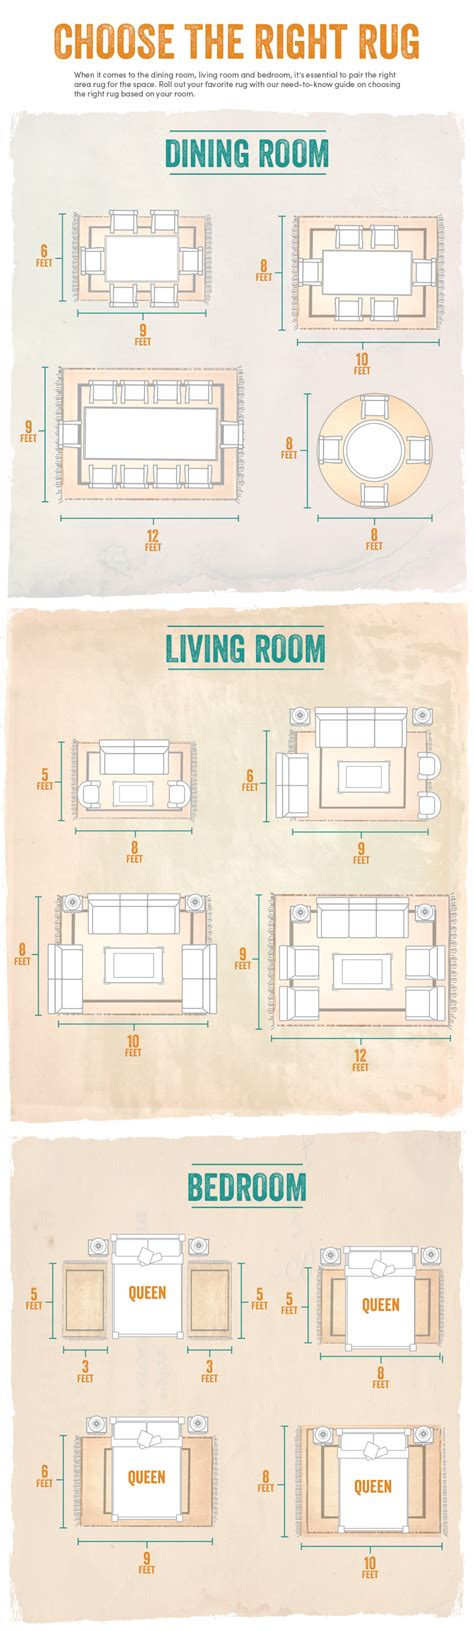 living room rug size guide lets talk rugs size color and textures lovably imperfect